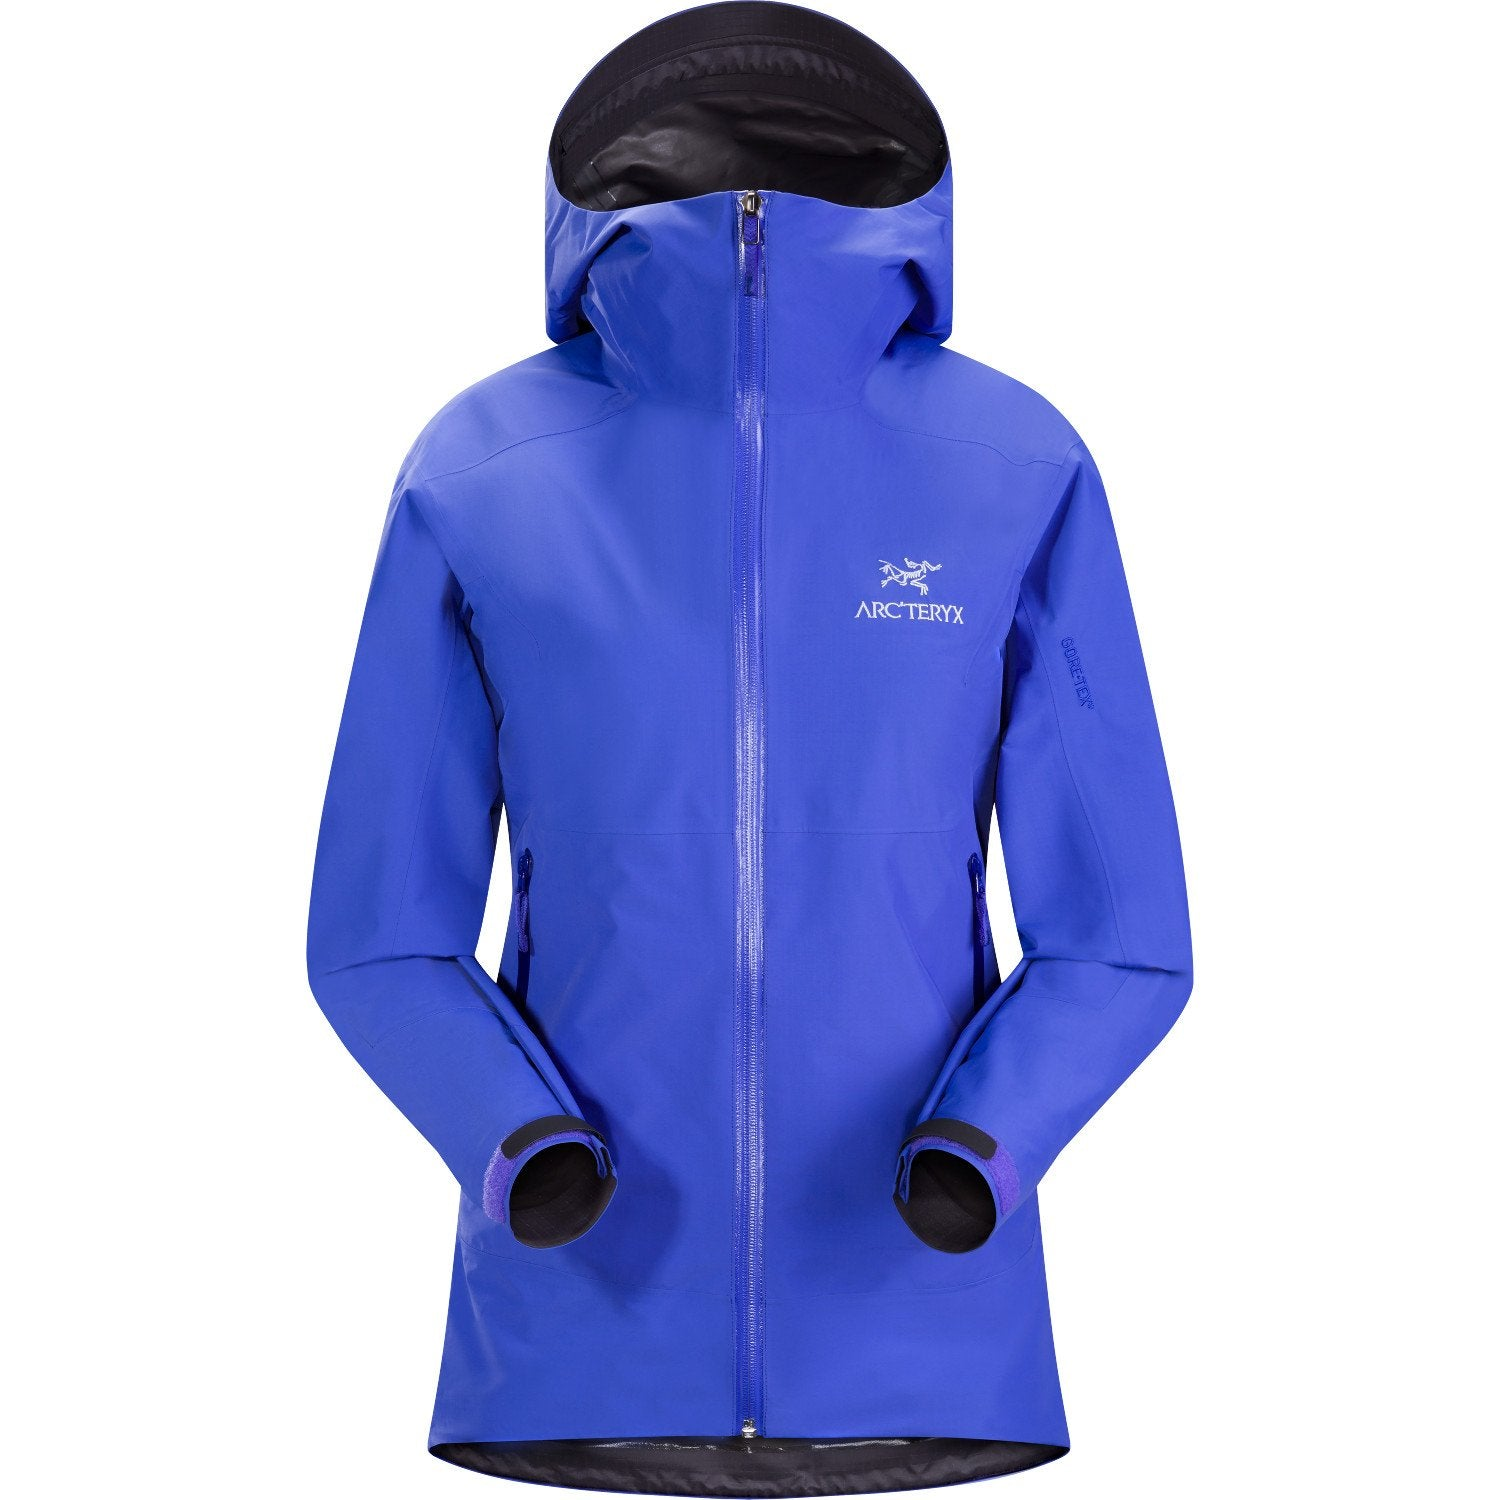 ArcTeryx Zeta SL Jacket Women's in Lilac